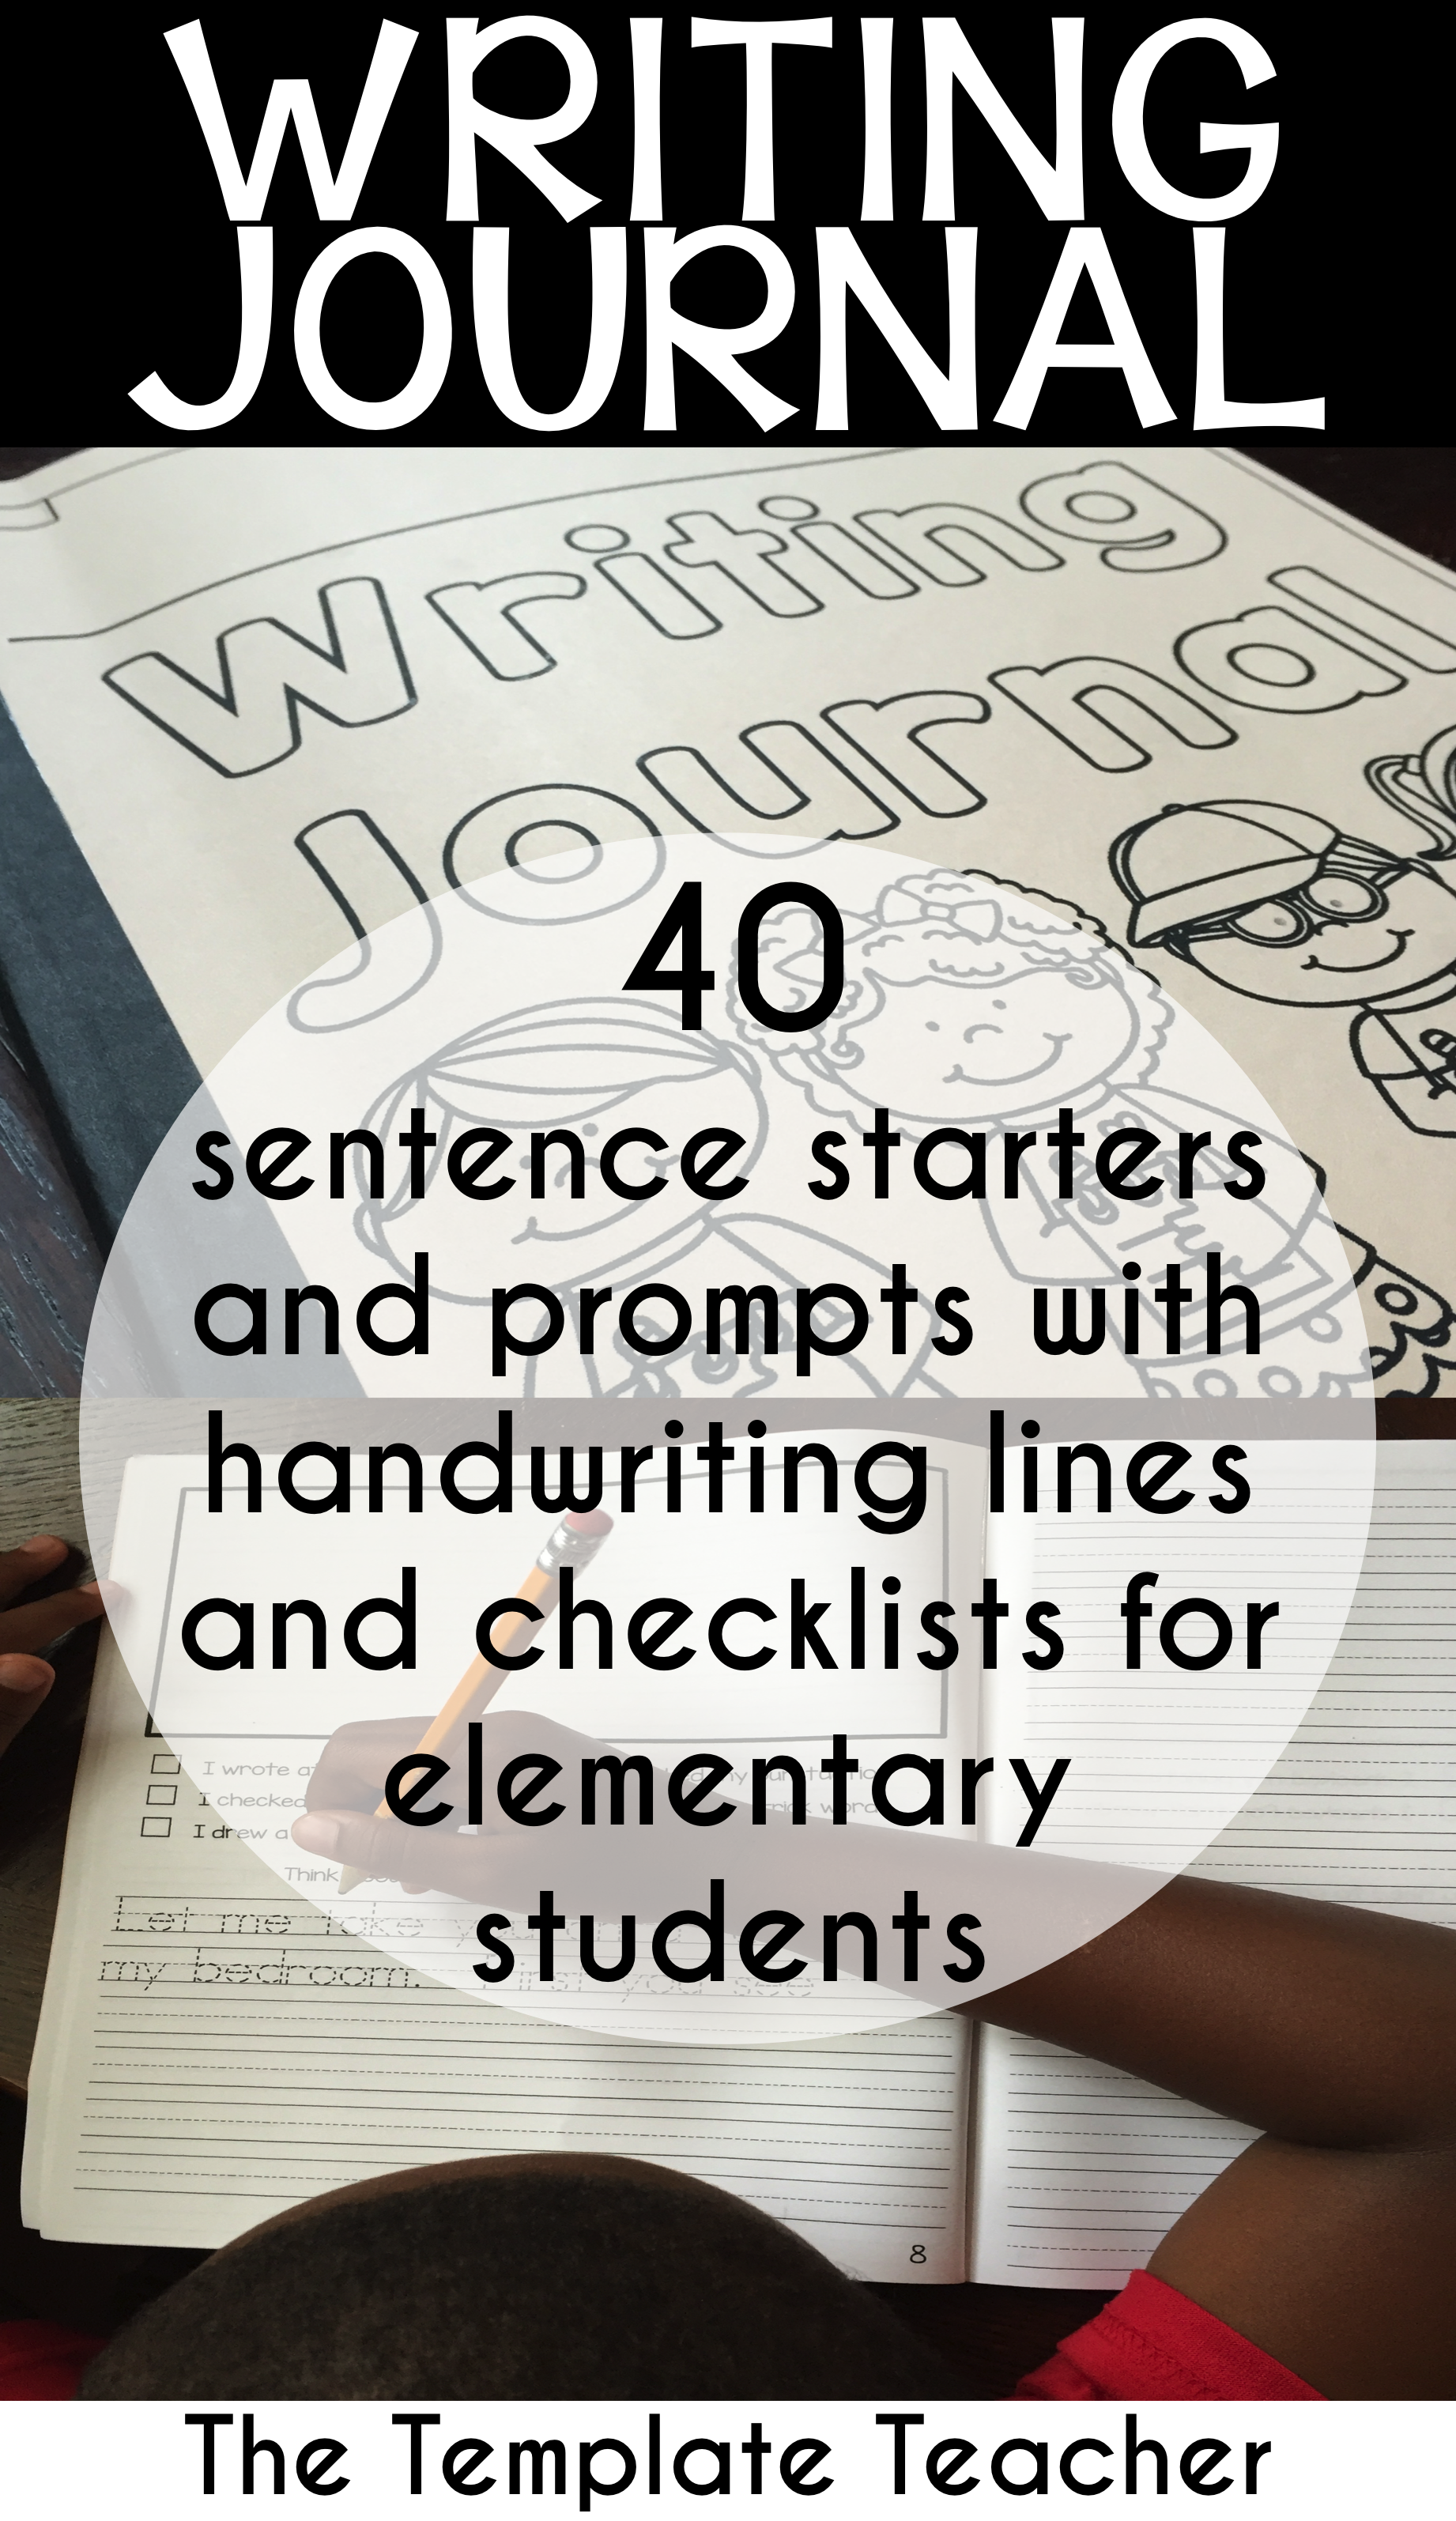 Writing Journal with Sentence Starters and Handwriting Lines for ...